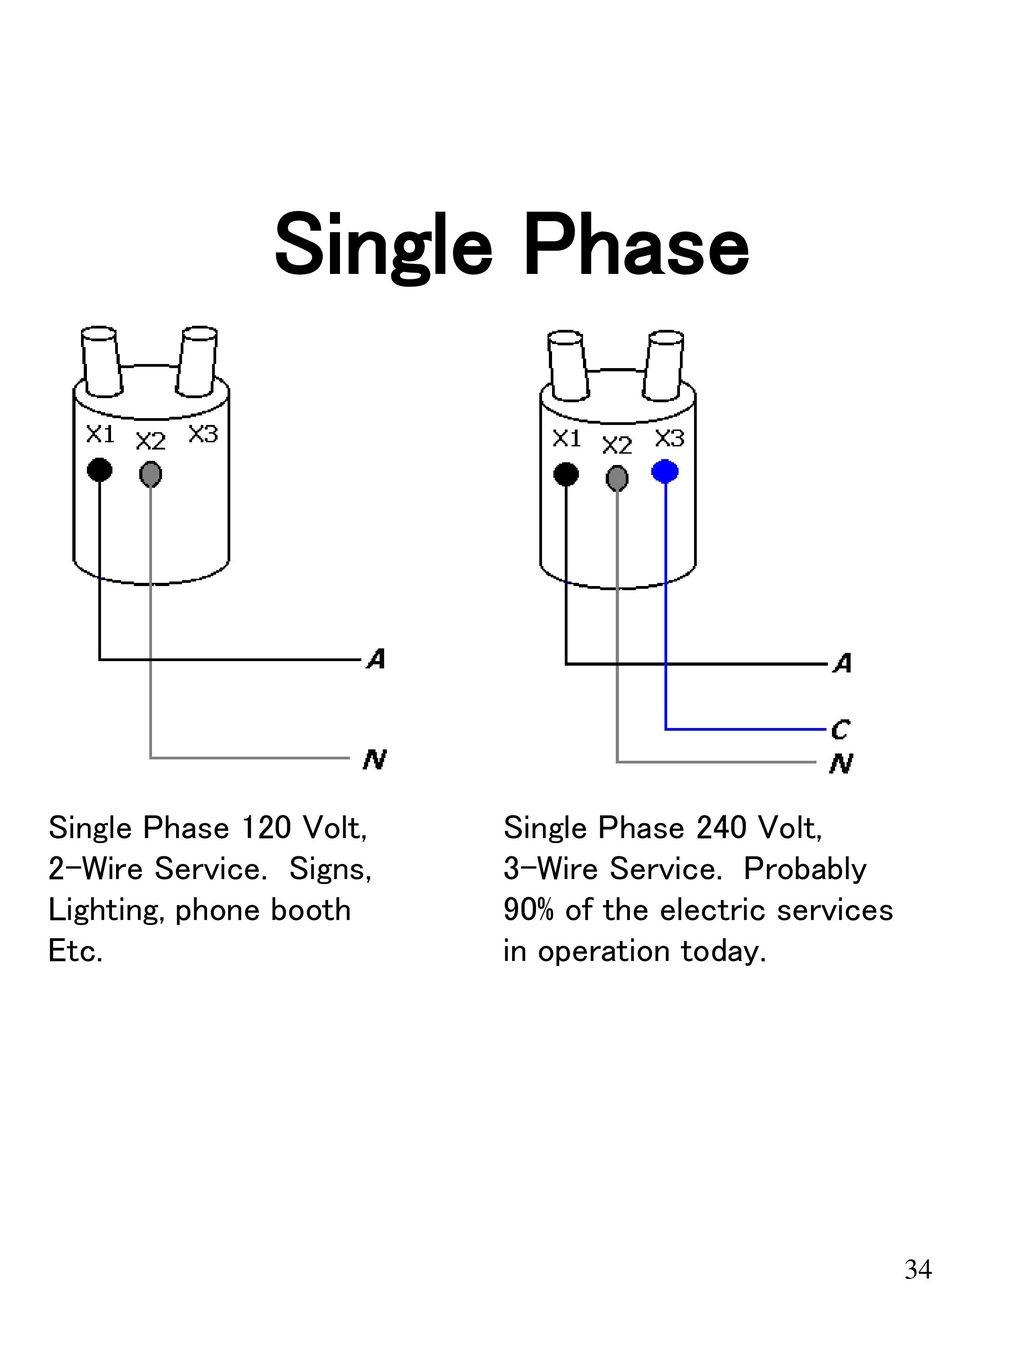 Metering In Todays World Ppt Download Single Phase Service Wiring Diagram 34